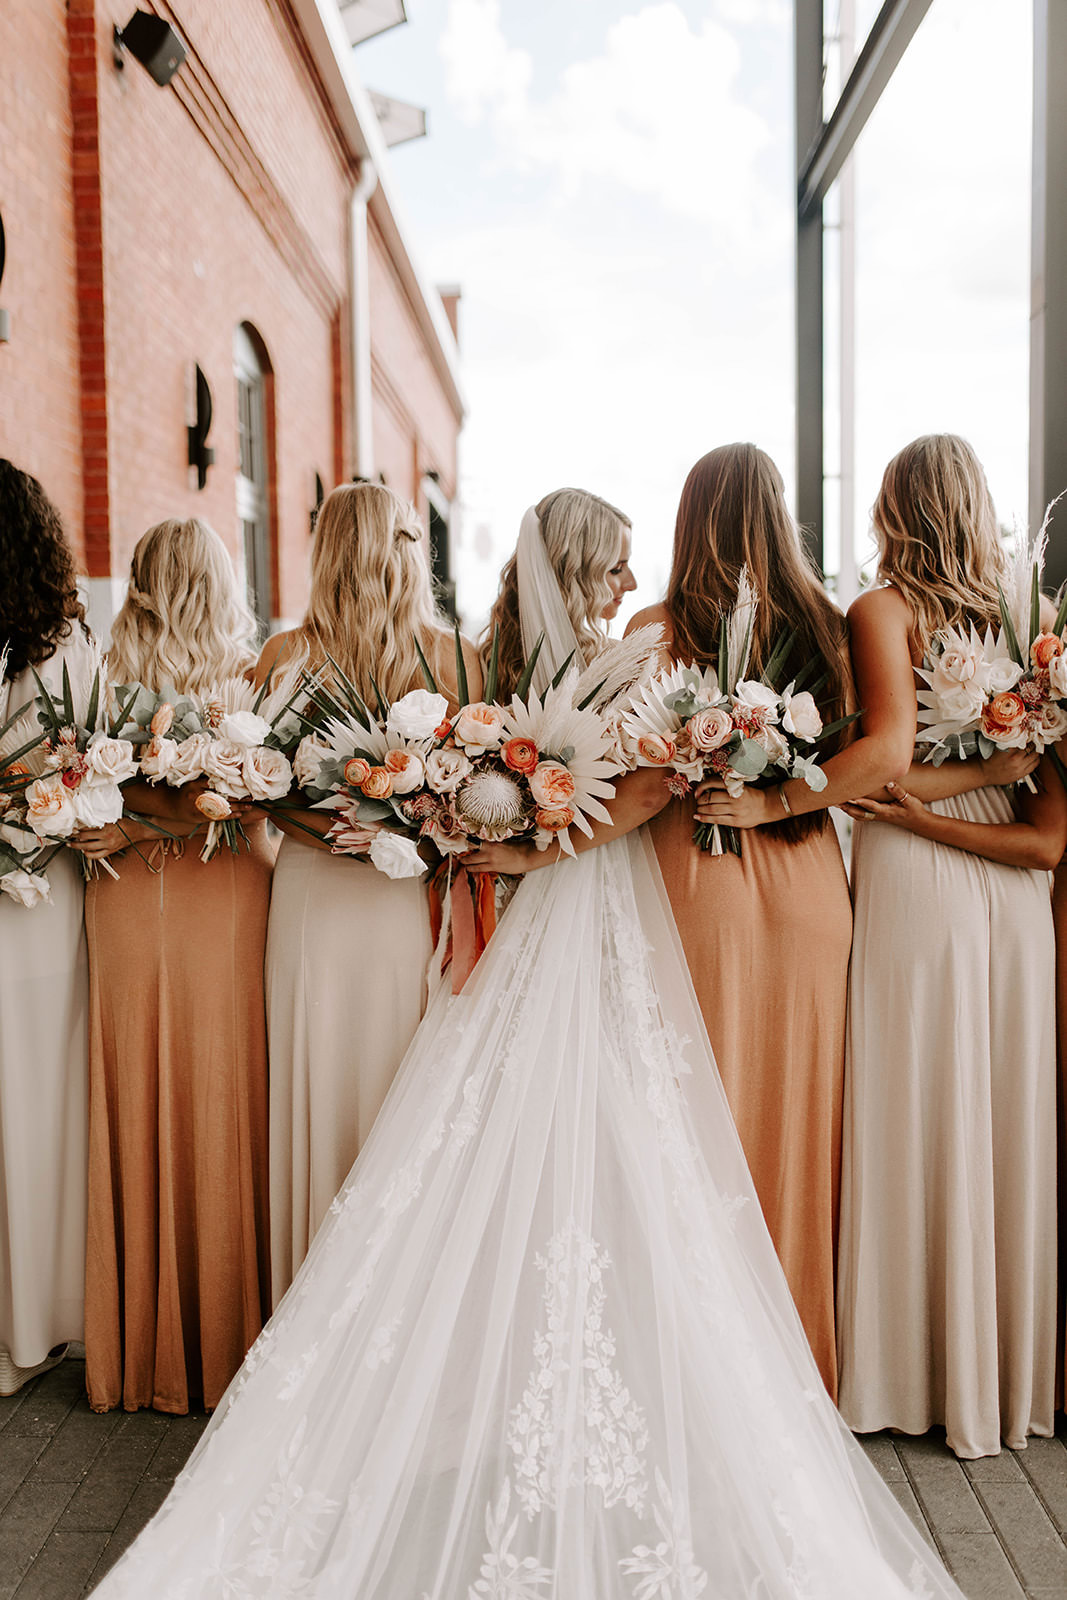 INSTAGRAM Creative Bridal Party Portrait, Bridesmaids in Mix and Match Neutral and Sandy Blush Dresses Holding Whimsical Palm Tree Leaves, Blush Pink and Burnt Orange Roses, King Protea Floral Bouquets, Bride in Romantic Cathedral Veil   Tampa Bay Wedding Planner Coastal Coordinating